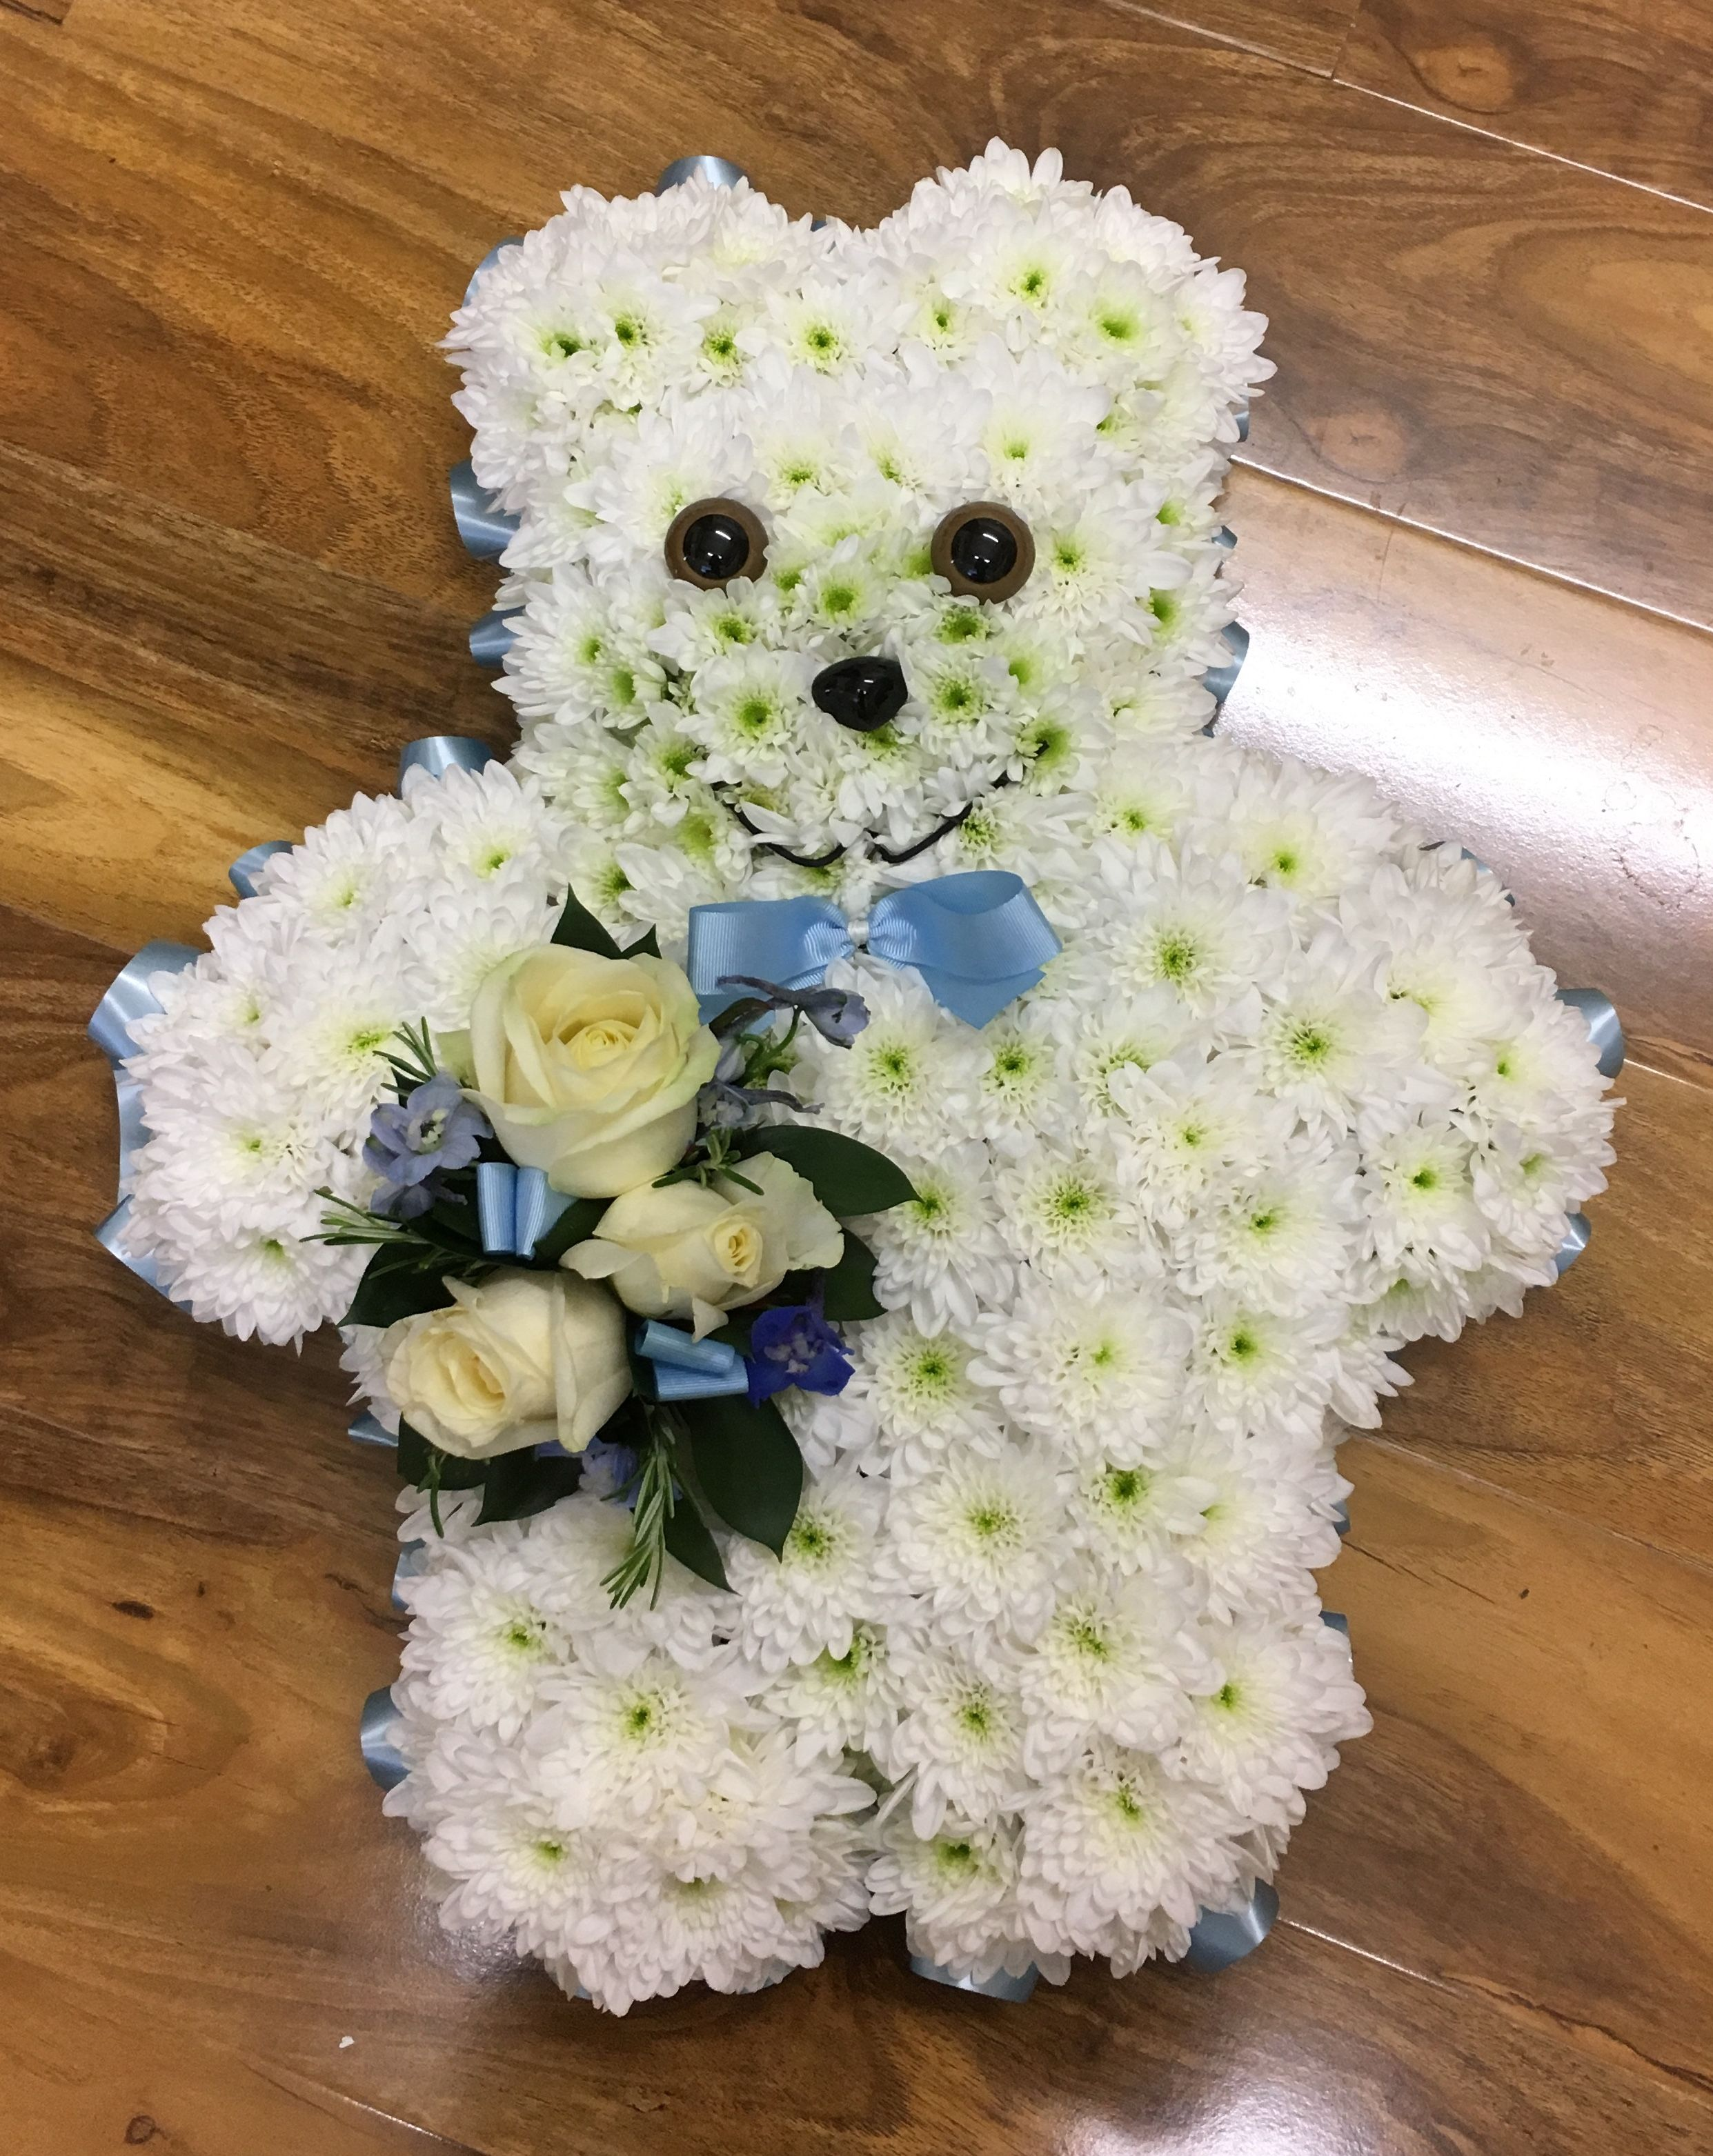 Bow tie teddy tribute 2d funeral designs pinterest beautiful bow tie teddy tribute izmirmasajfo